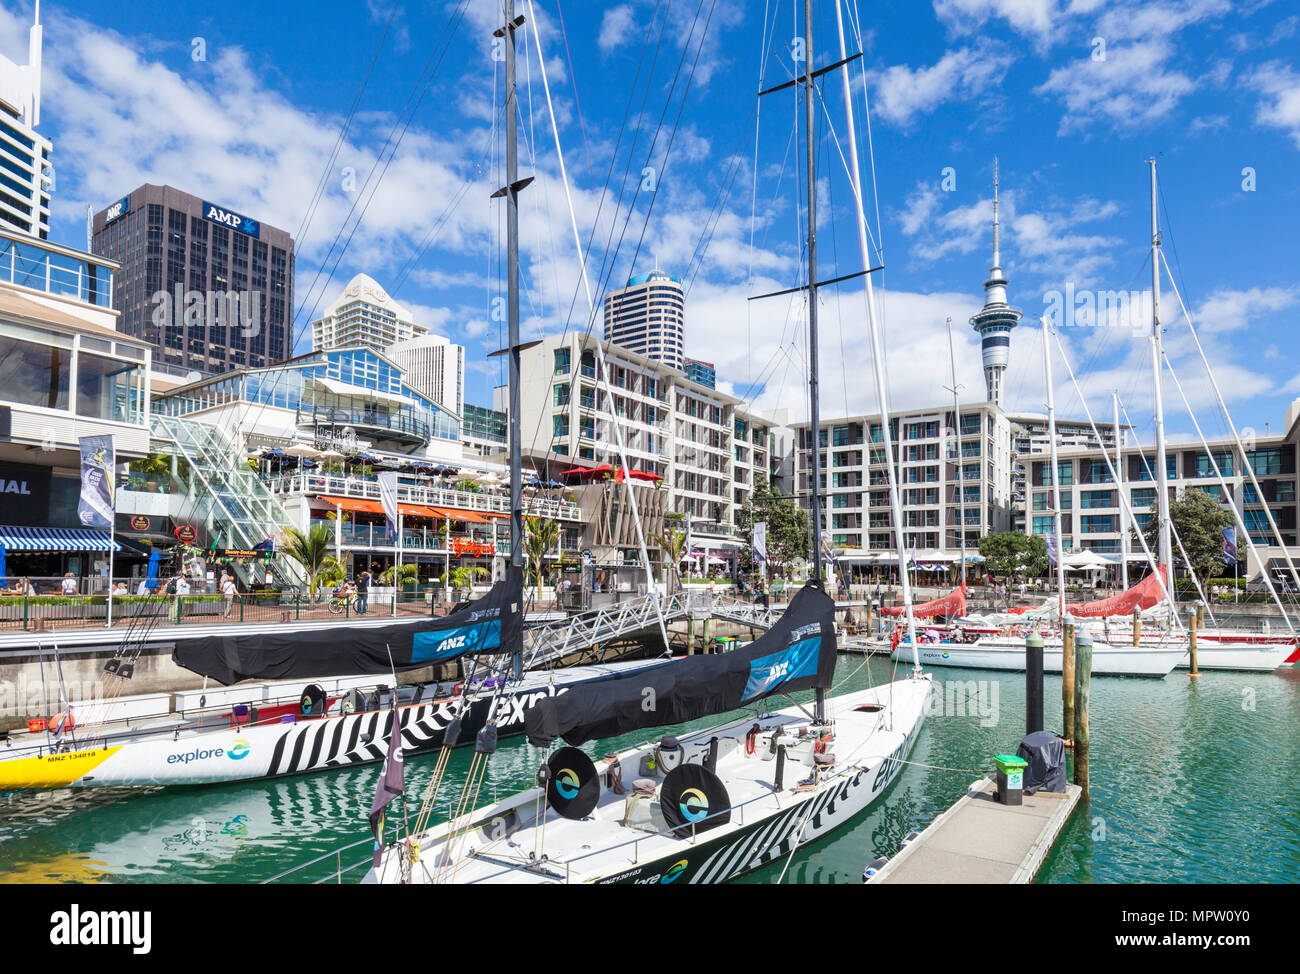 new zealand auckland new zealand north island yachts in viaduct basin inner harbour of Auckland waterfront viaduct harbour auckland north island nz - Stock Image